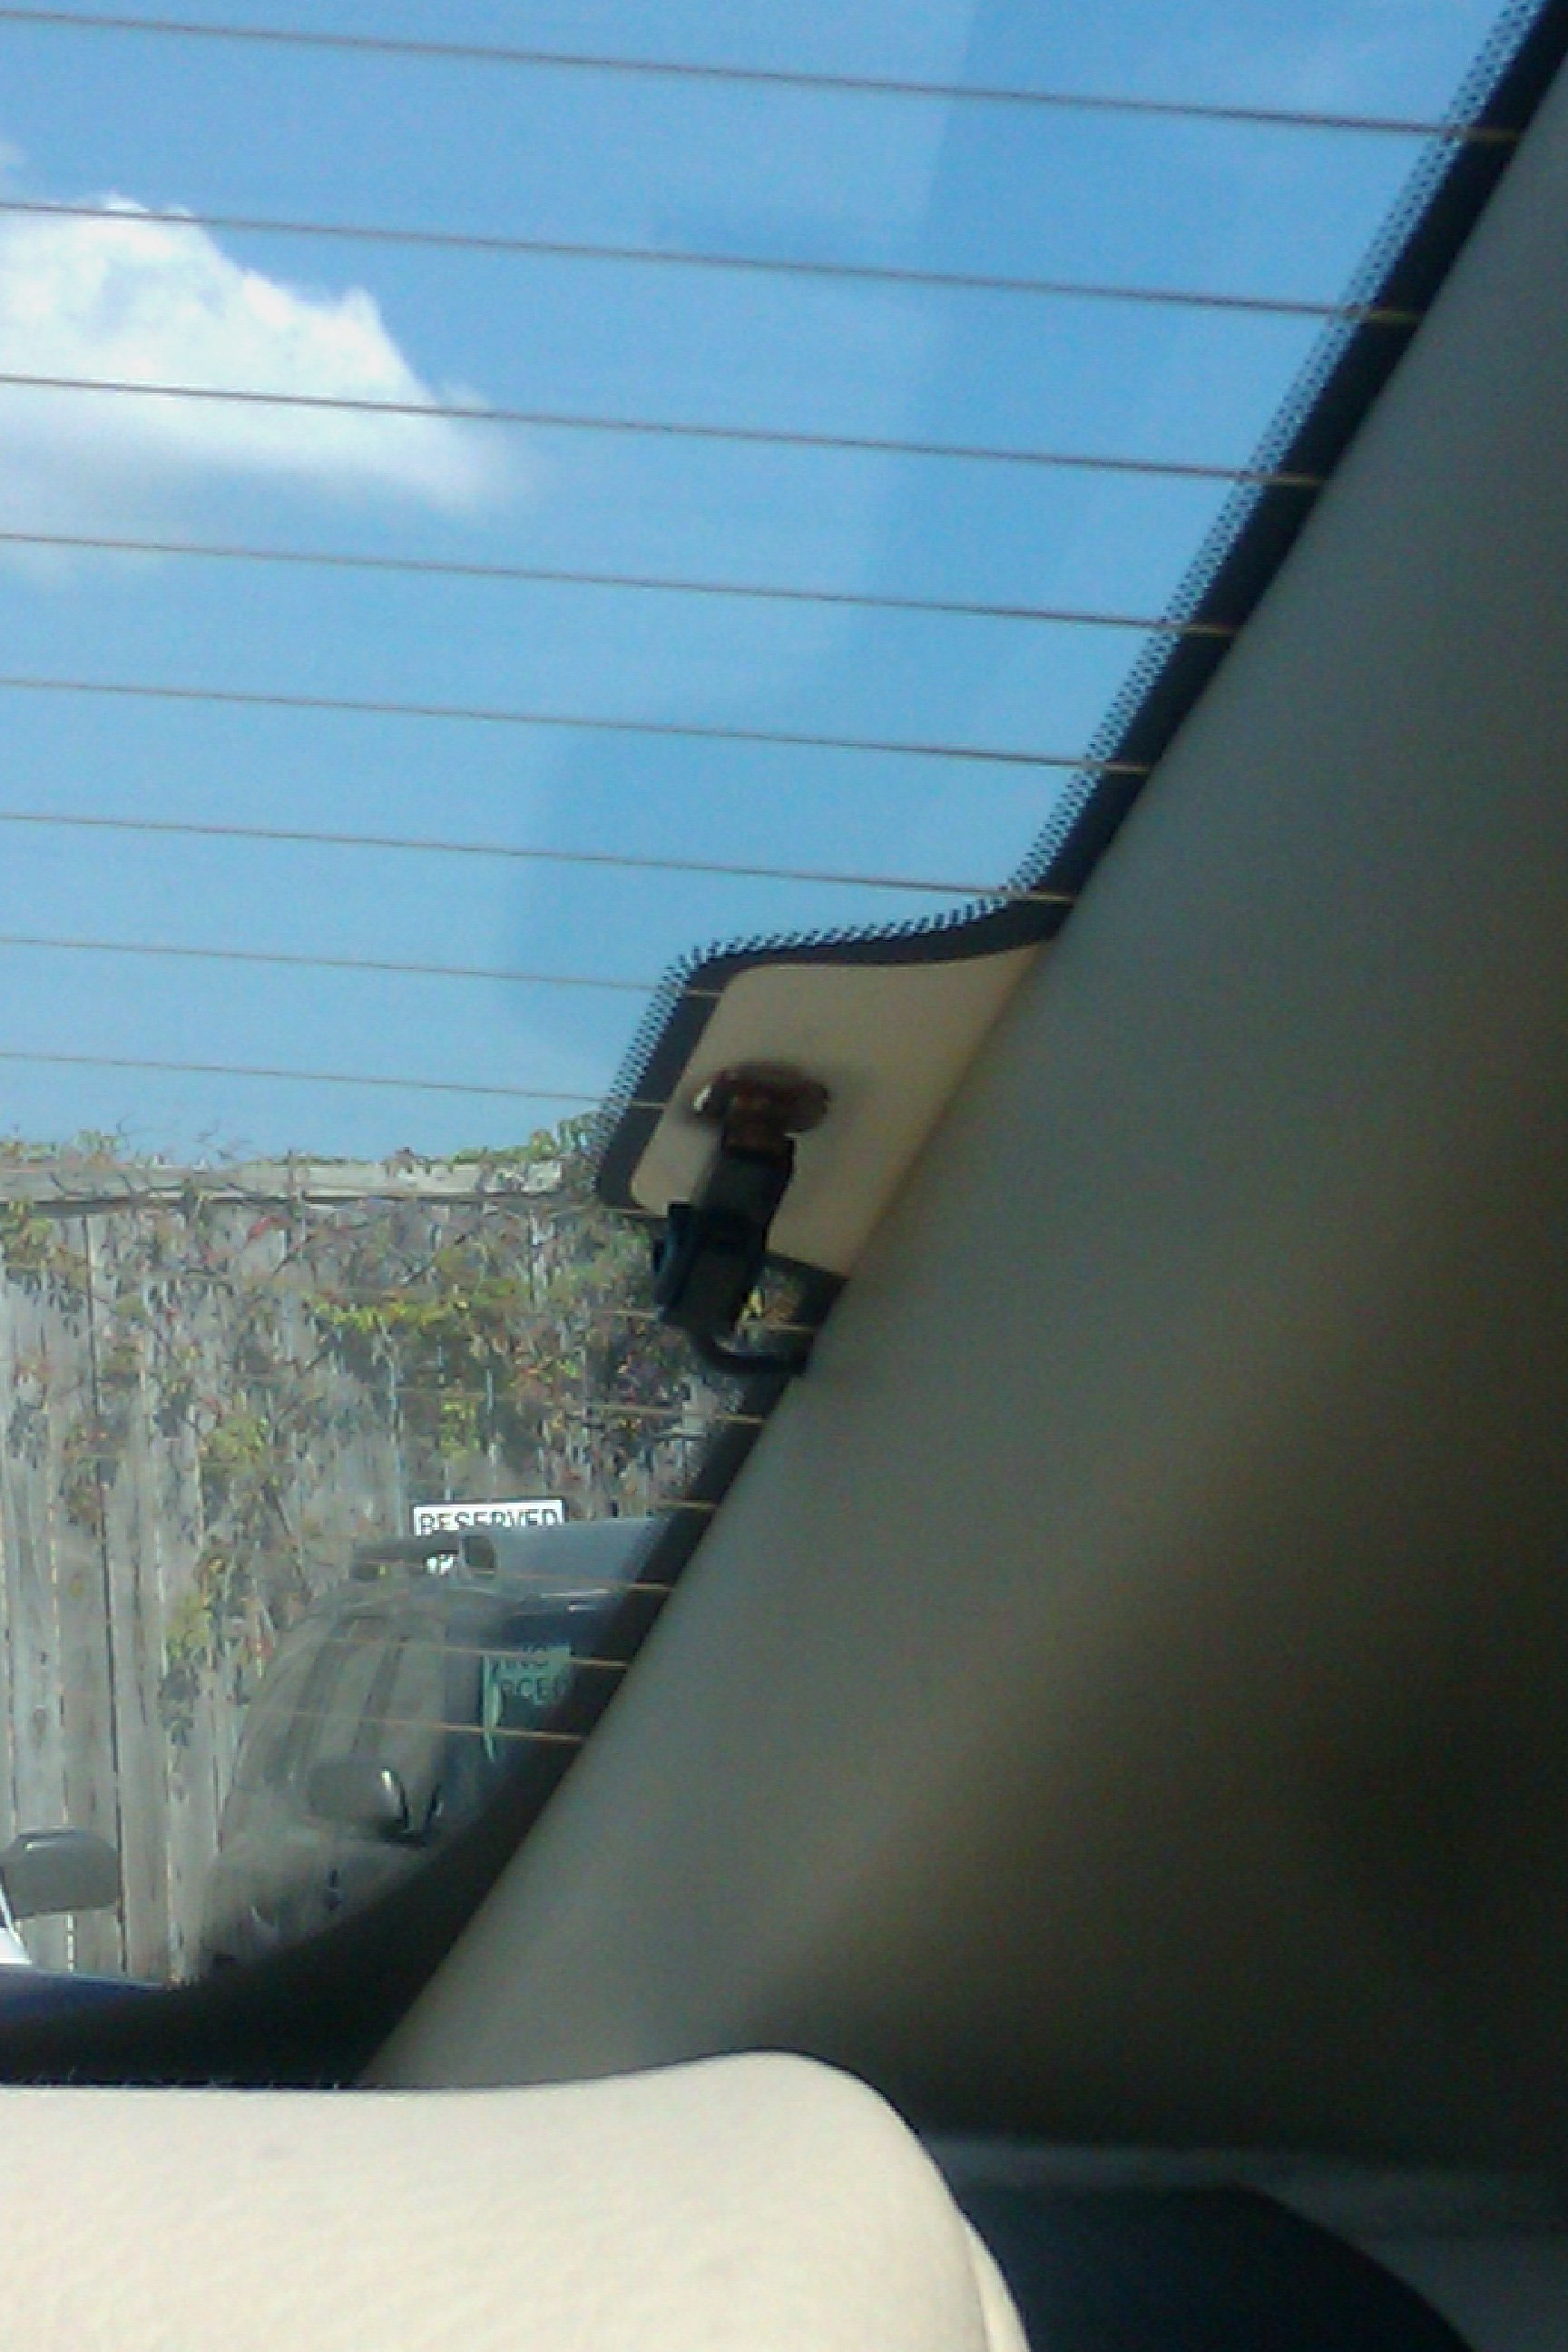 Why don\'t all windows on the car have defroster wires in them? : answers